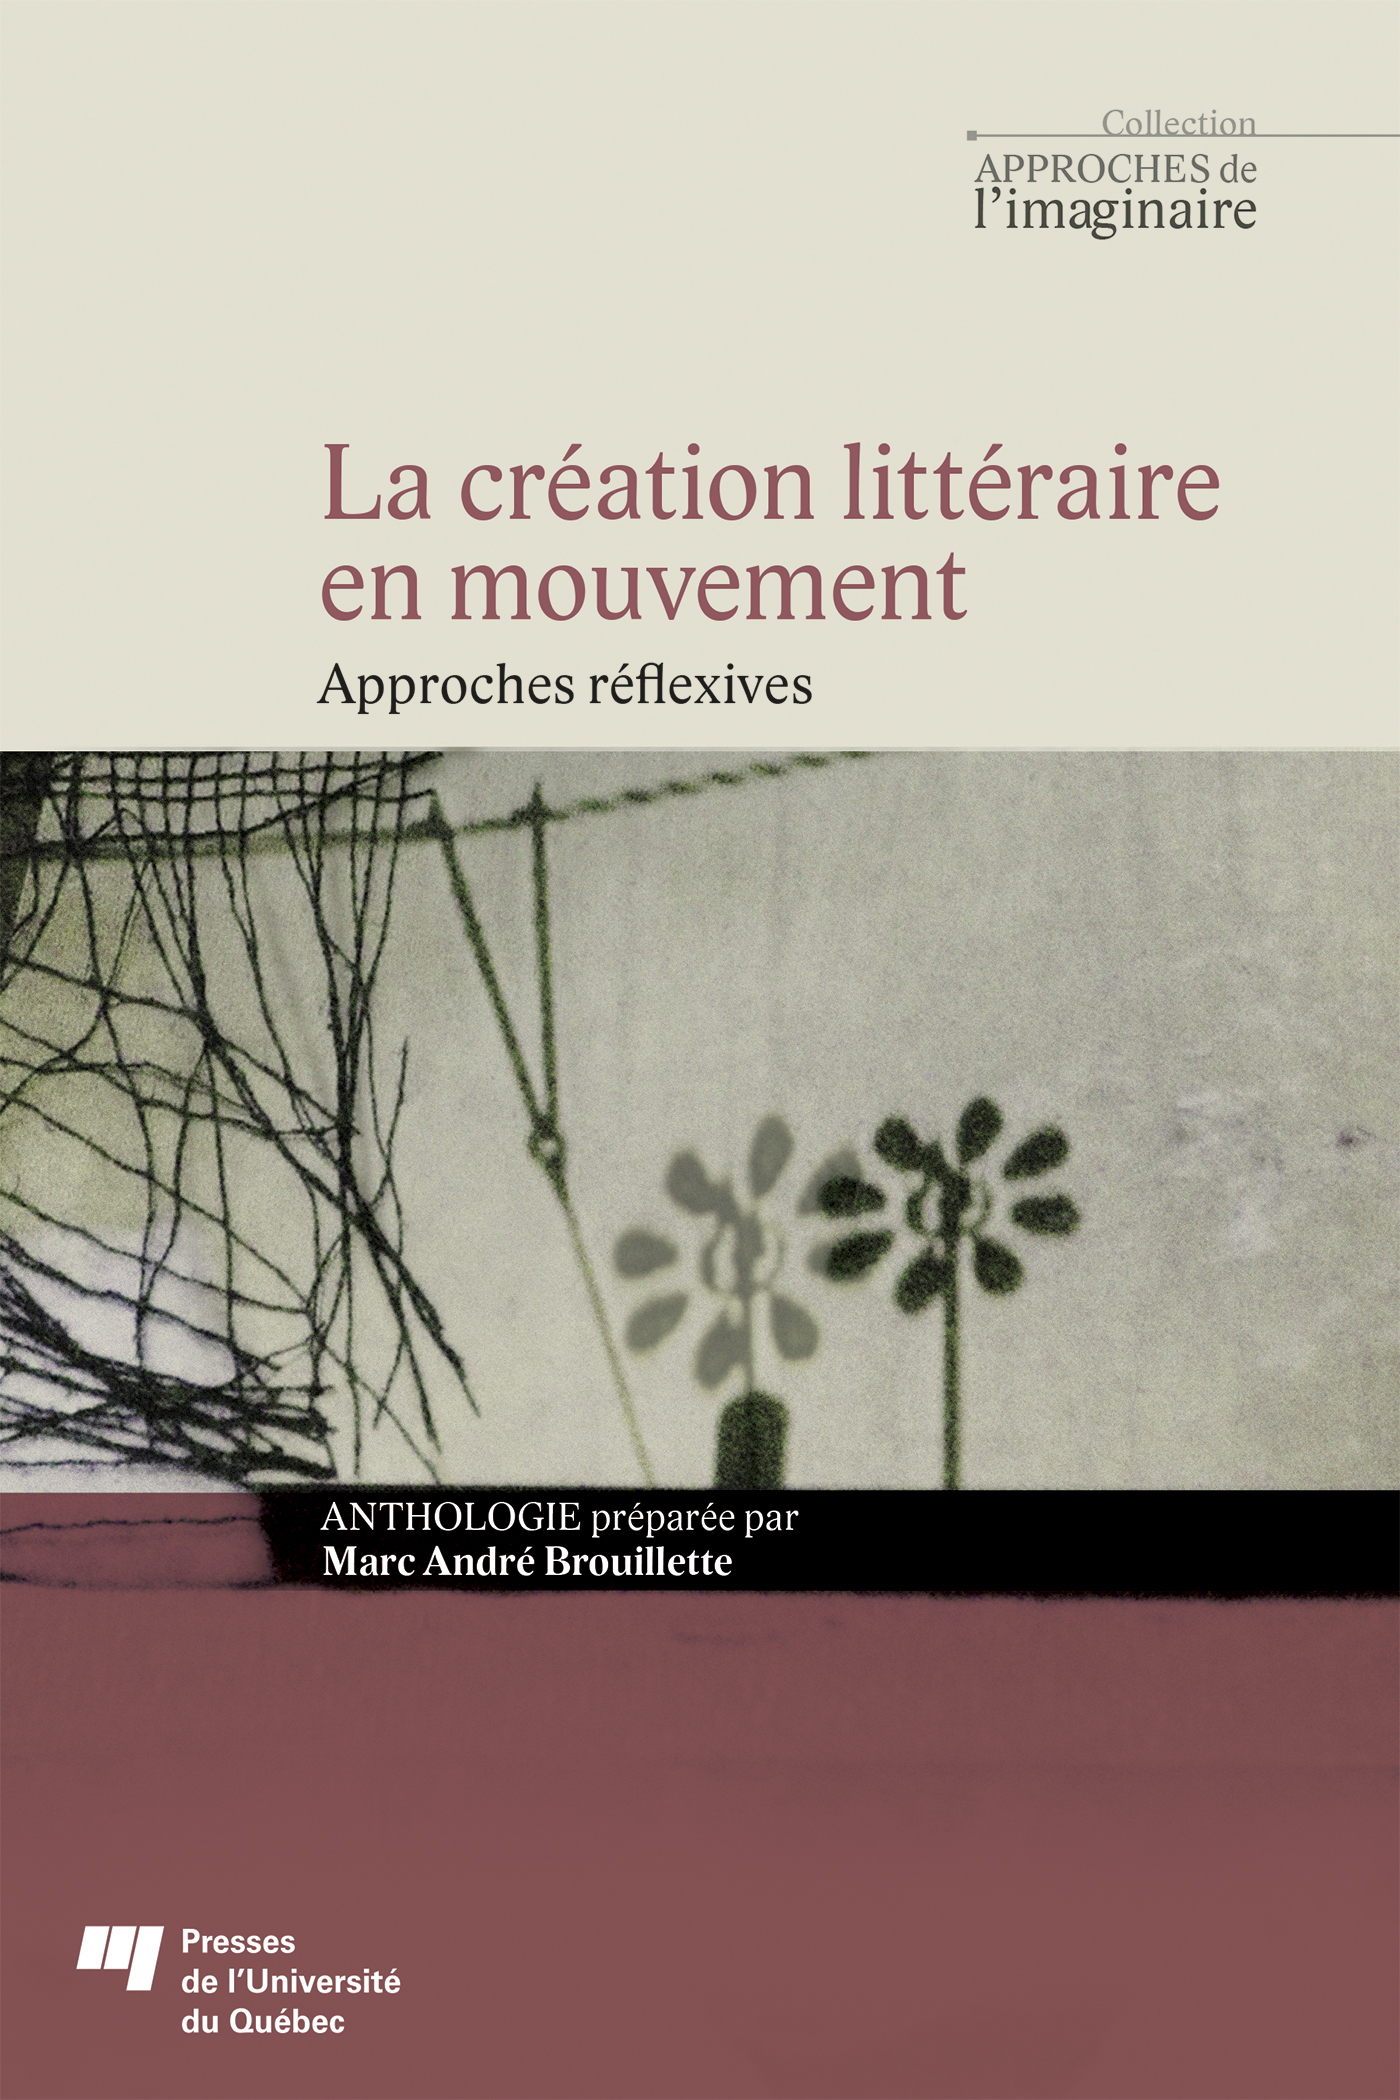 LA CREATION LITTERAIRE EN MOUVEMENT - APPROCHES REFLEXIVES